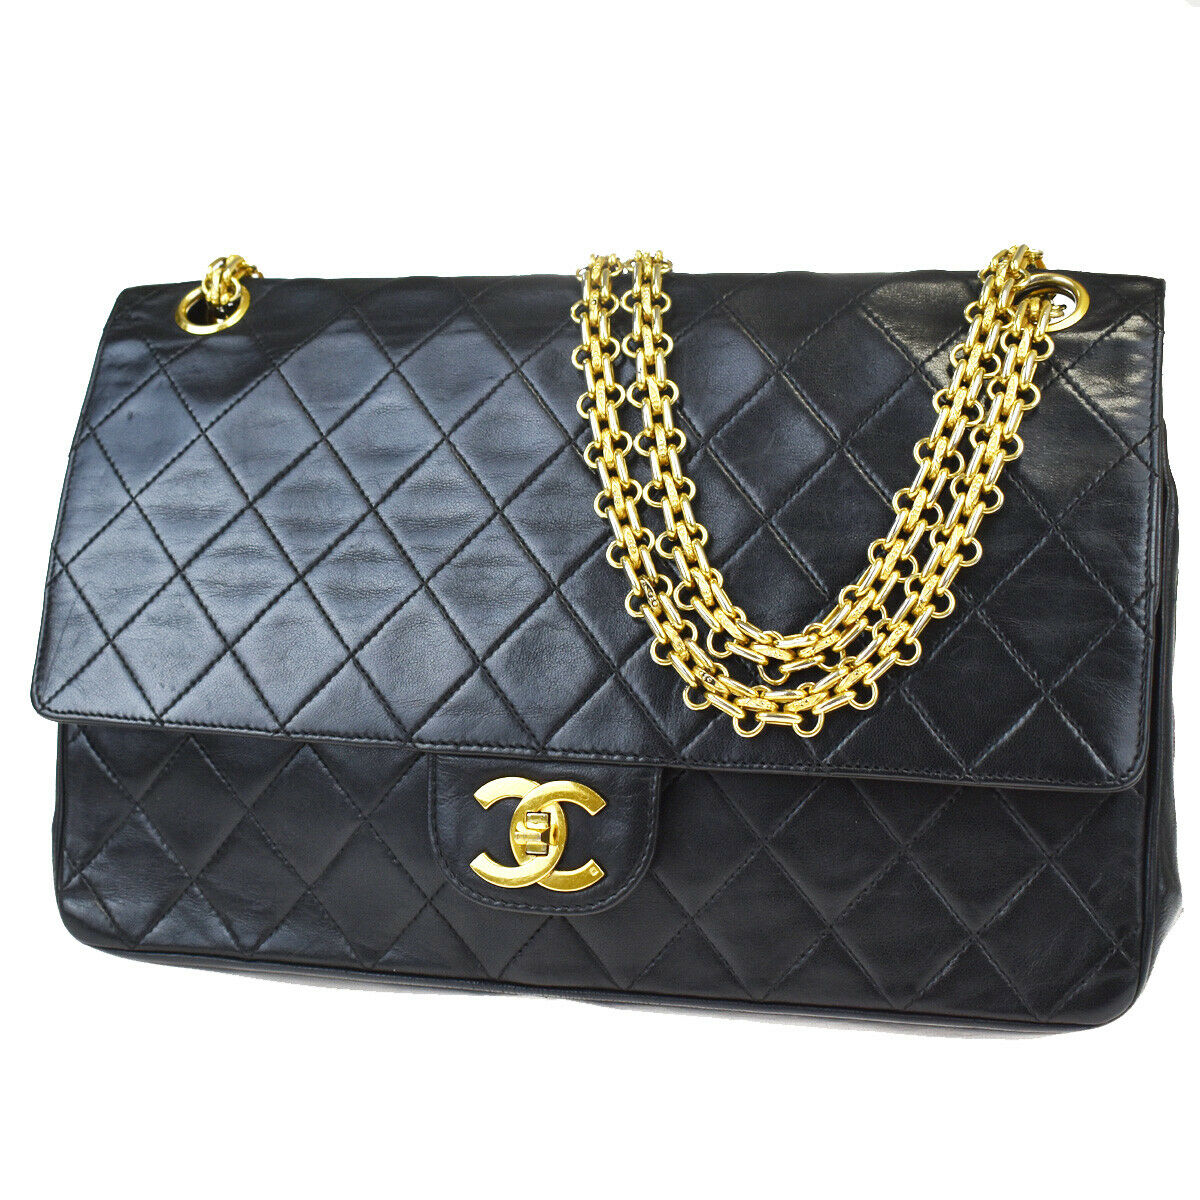 CHANEL CC Matelasse Double Flap Chain Shoulder Bag Leather Black